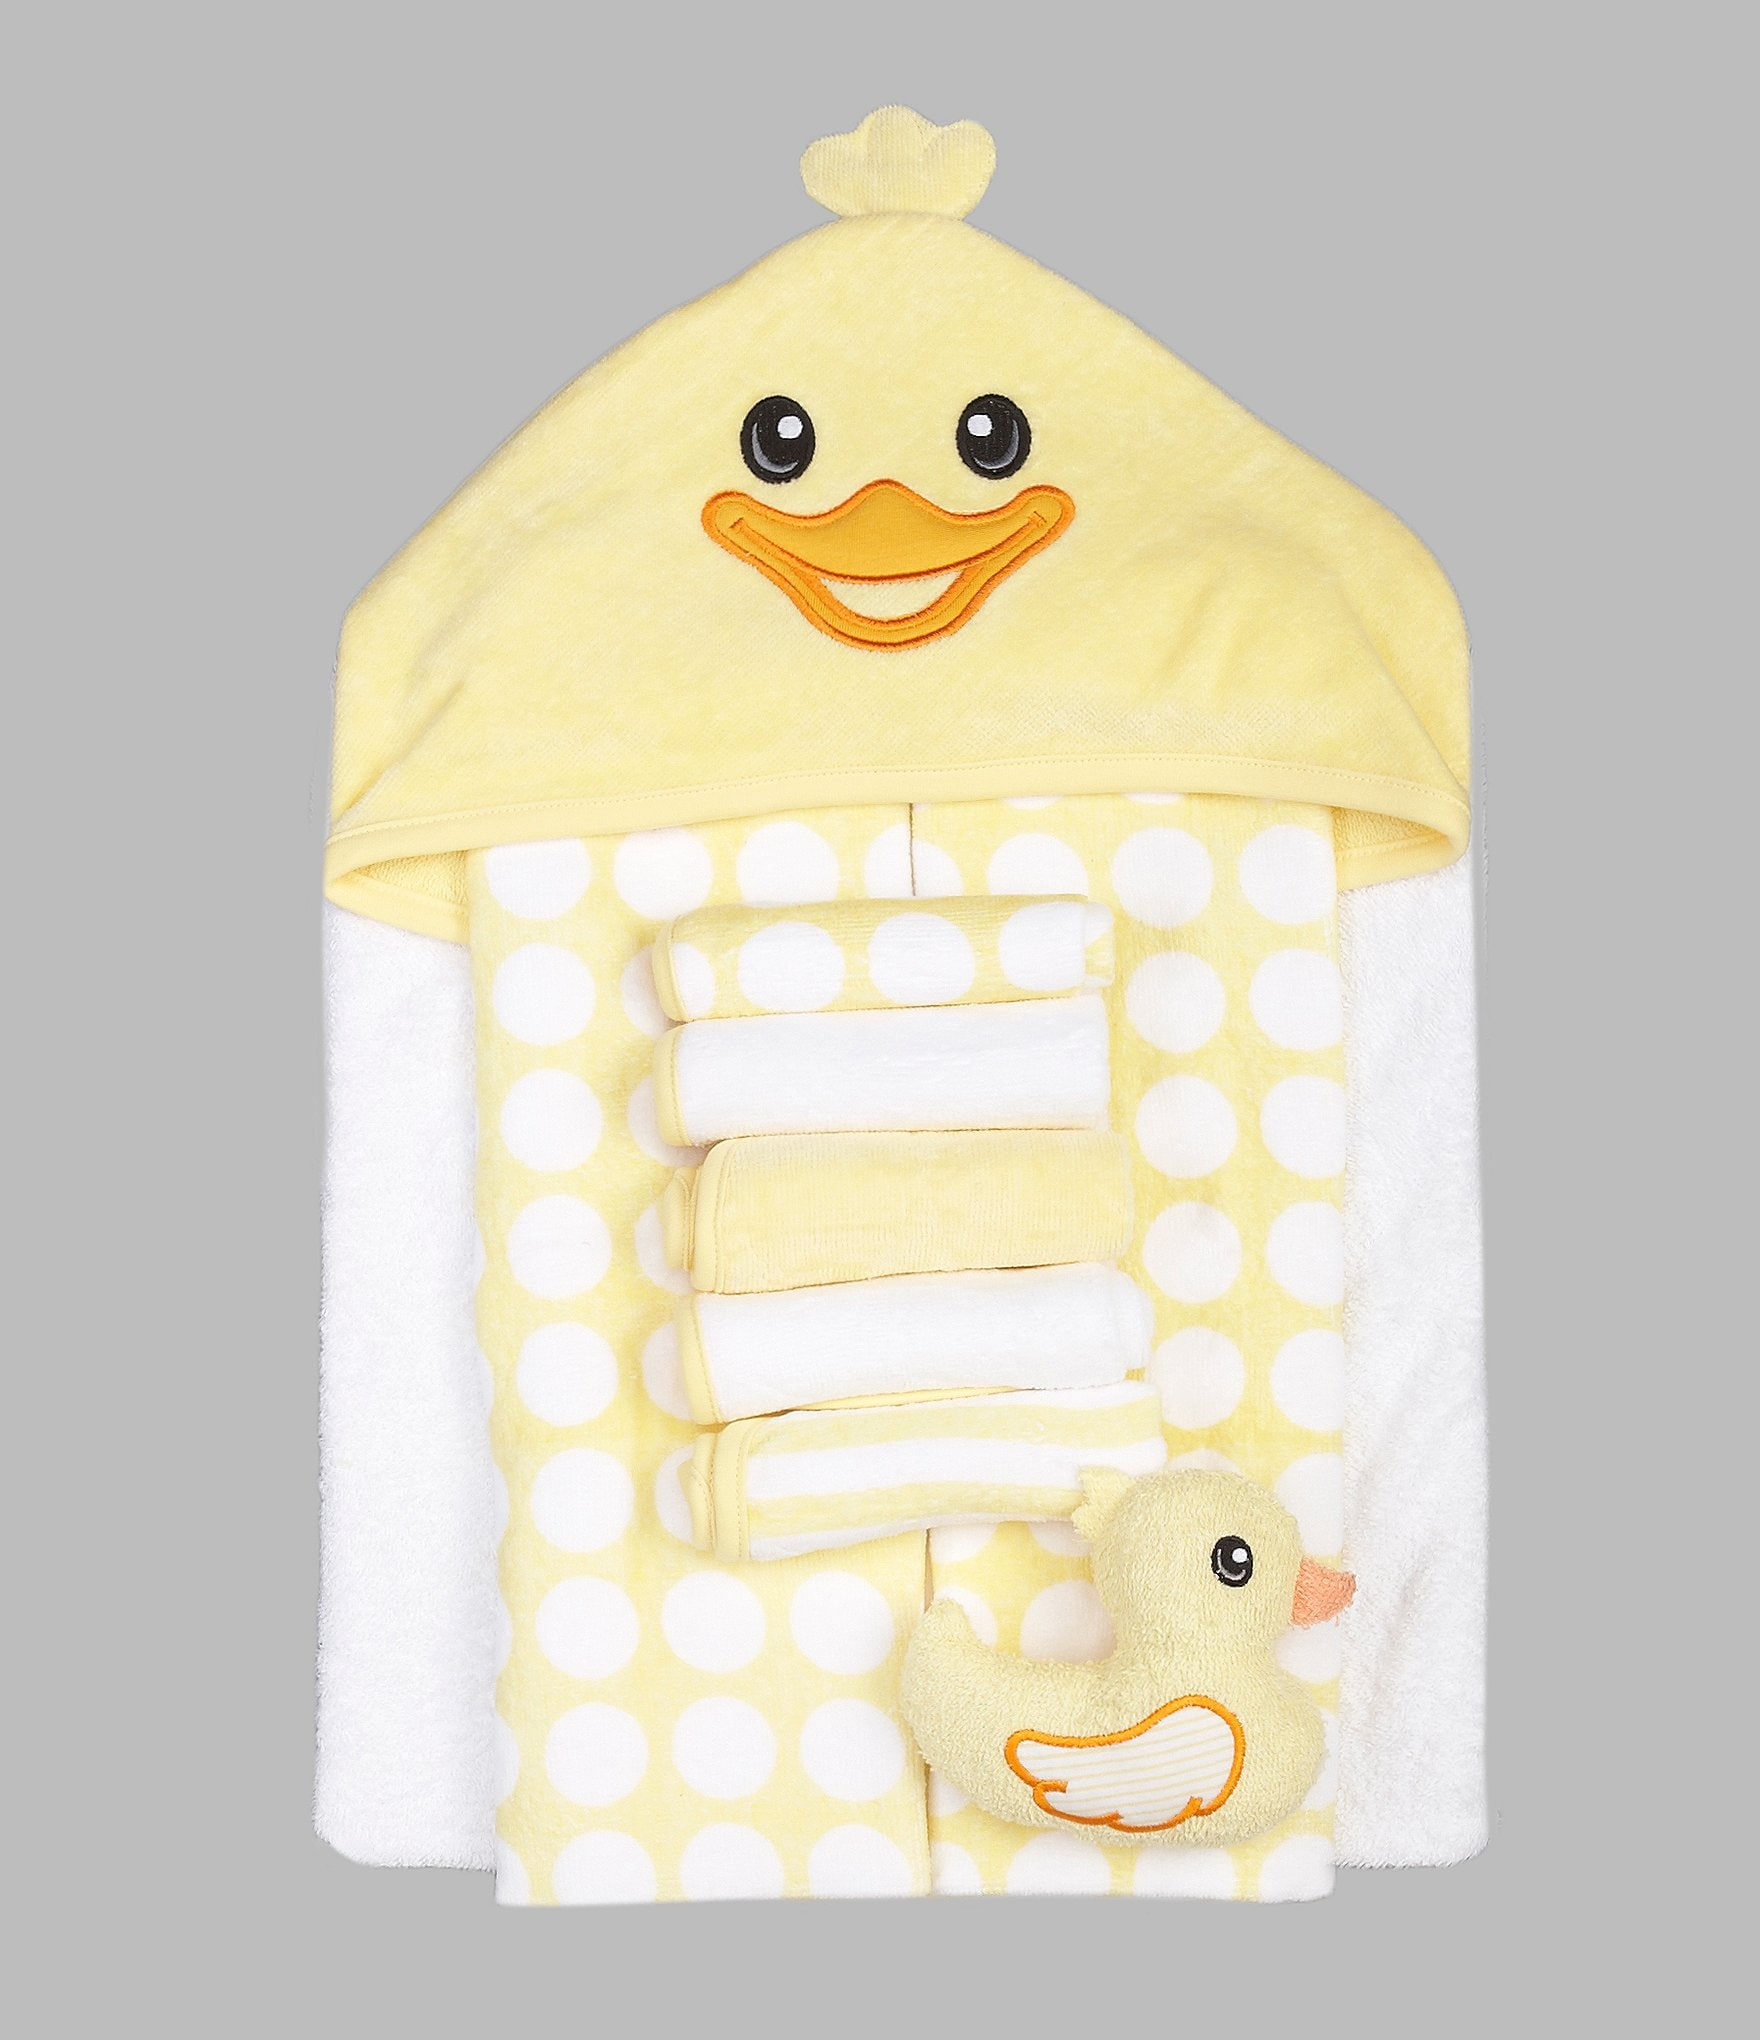 Starting out duck bath set dillards for A bathroom item that starts with n